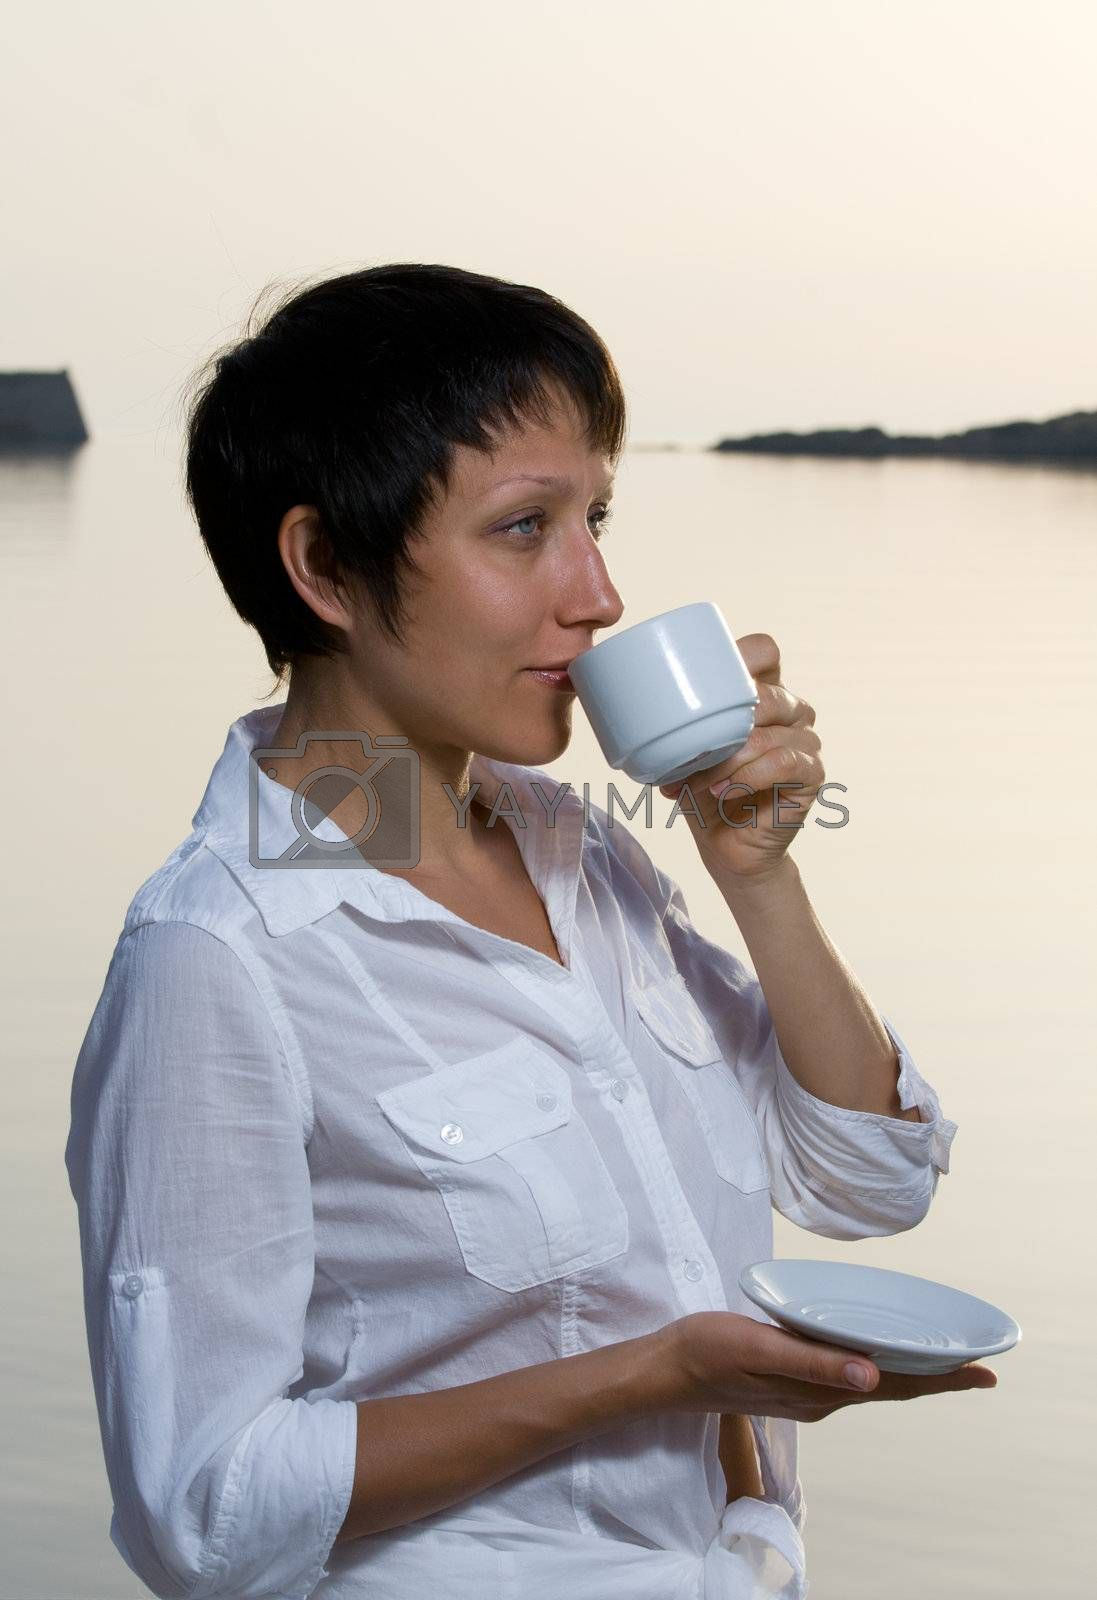 Young woman meets sunrise drinking morning coffee  by SergeyAK